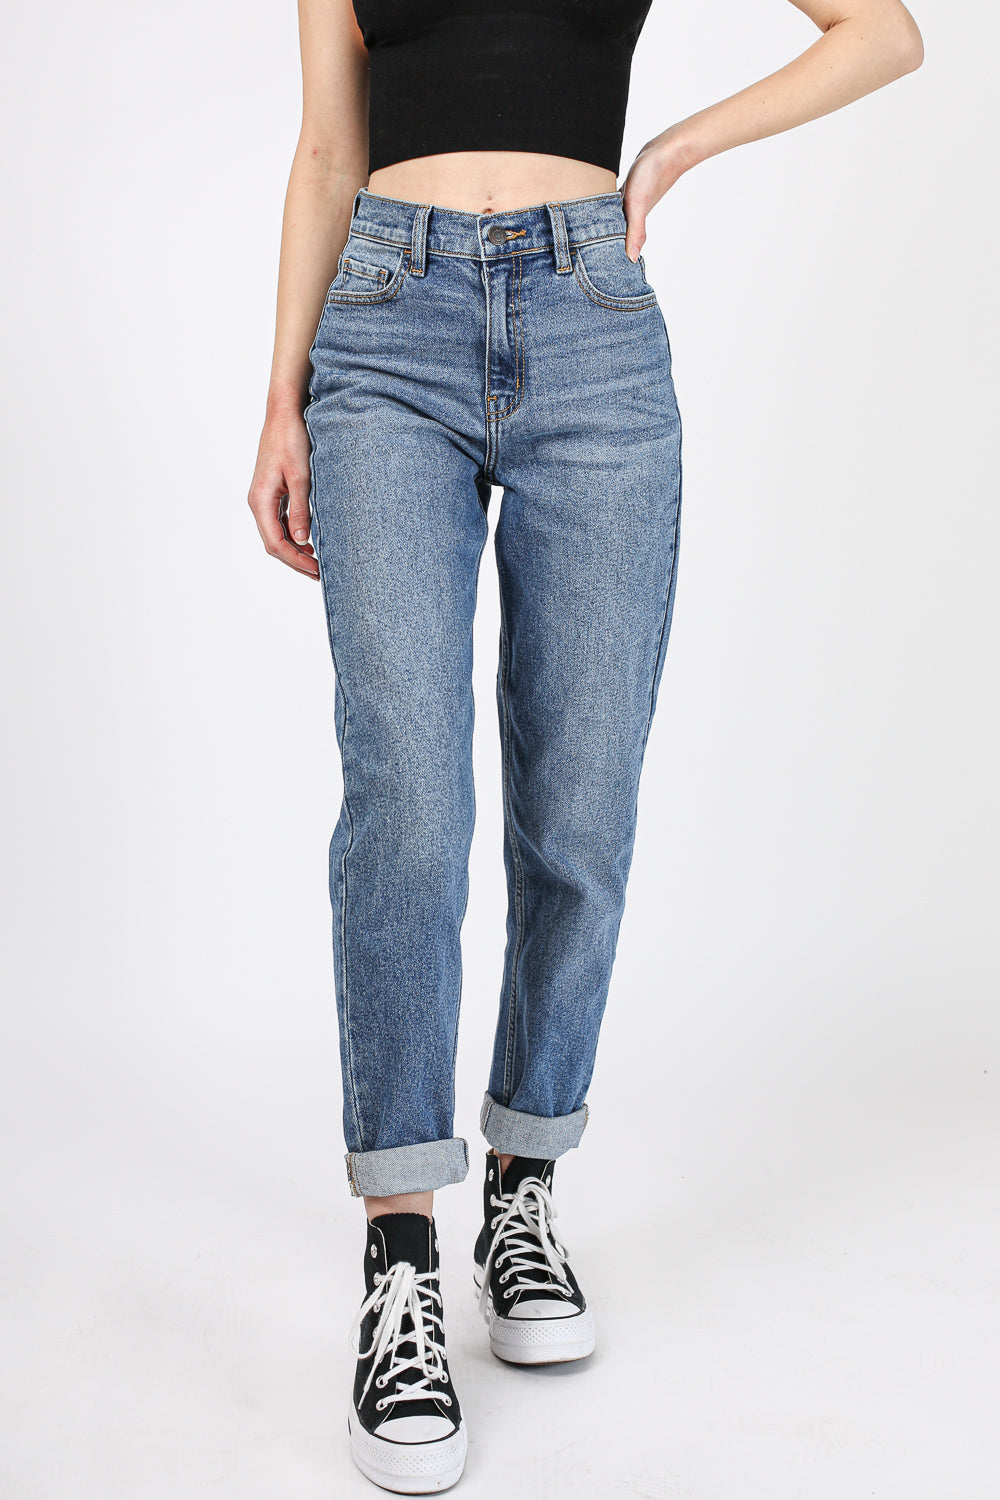 Got Your Back Slit Denim